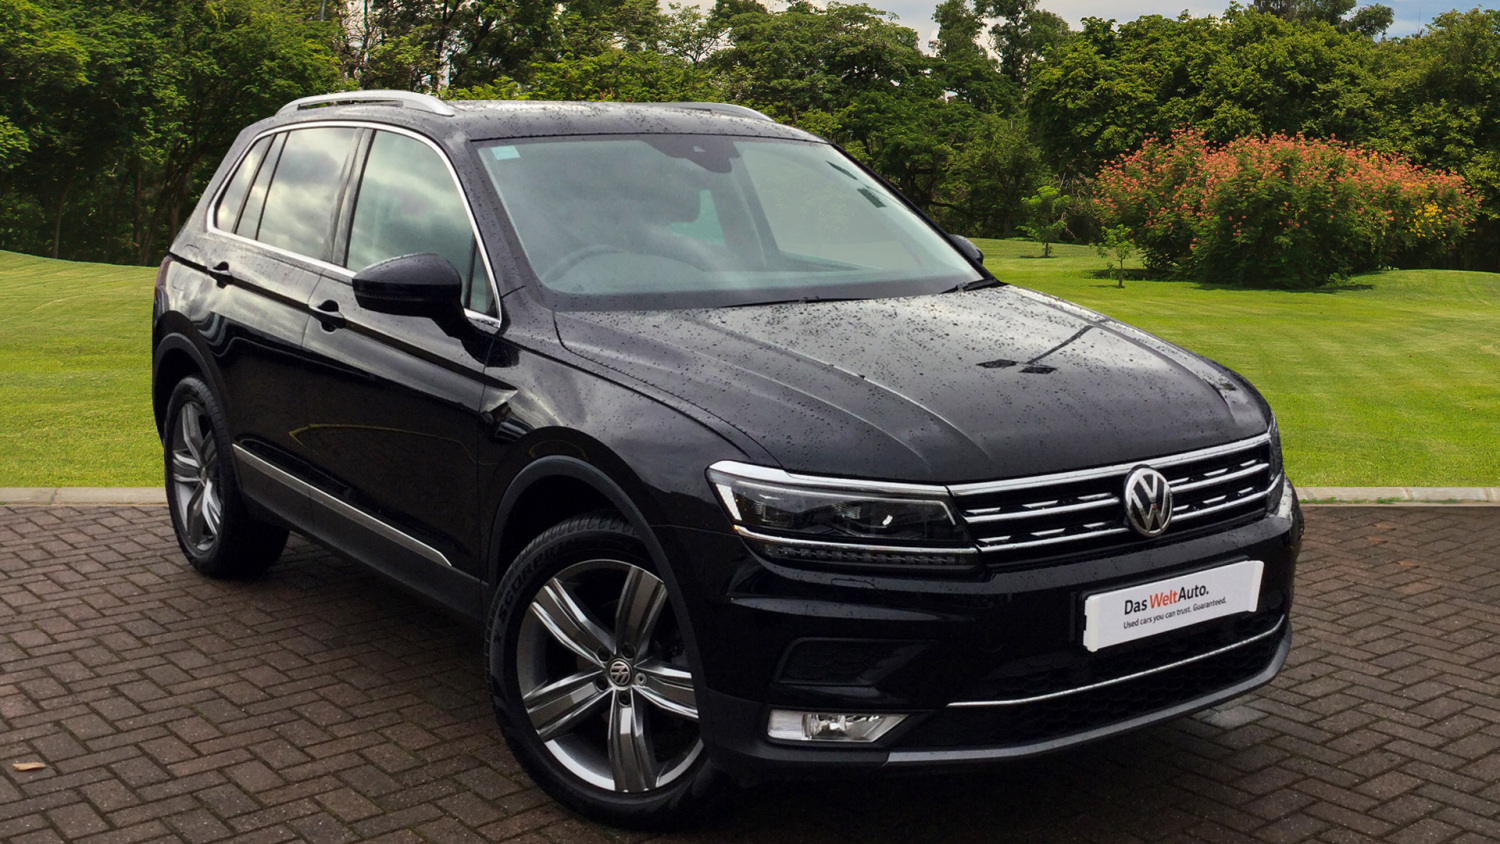 used volkswagen tiguan 2 0 tdi bmt 150 sel 5dr diesel. Black Bedroom Furniture Sets. Home Design Ideas